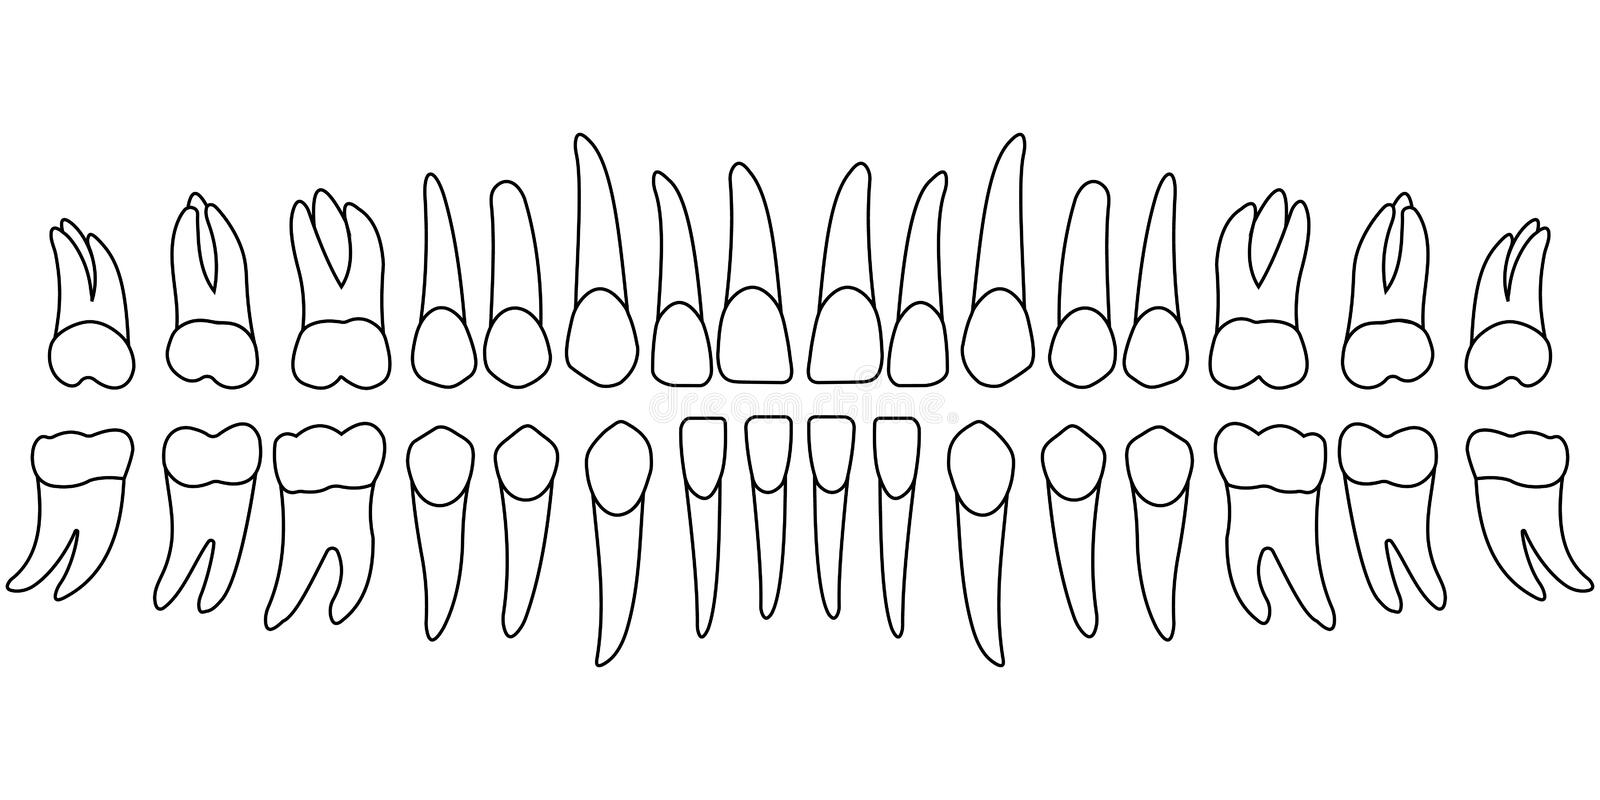 Tooth chart teeth. Teeth chart tooth, the front side of a person`s teeth , chart for dental clinic, vector template dentist vector illustration